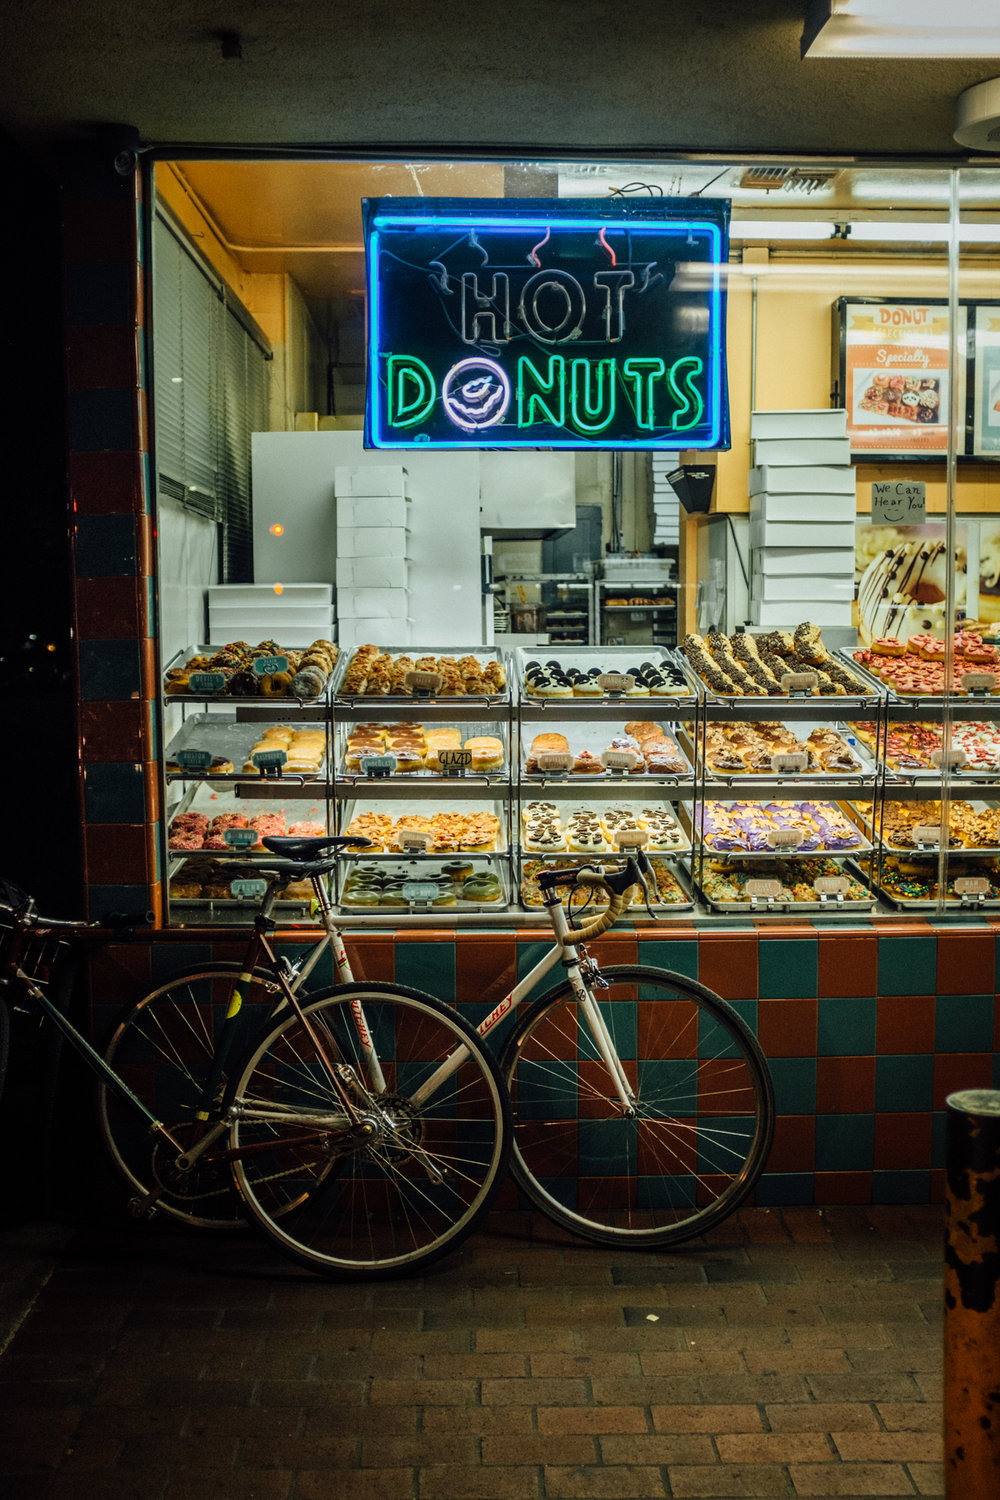 urban-cycling-blog-unsettle&co-interview-with-photographer-brian-vernor-donut-shot